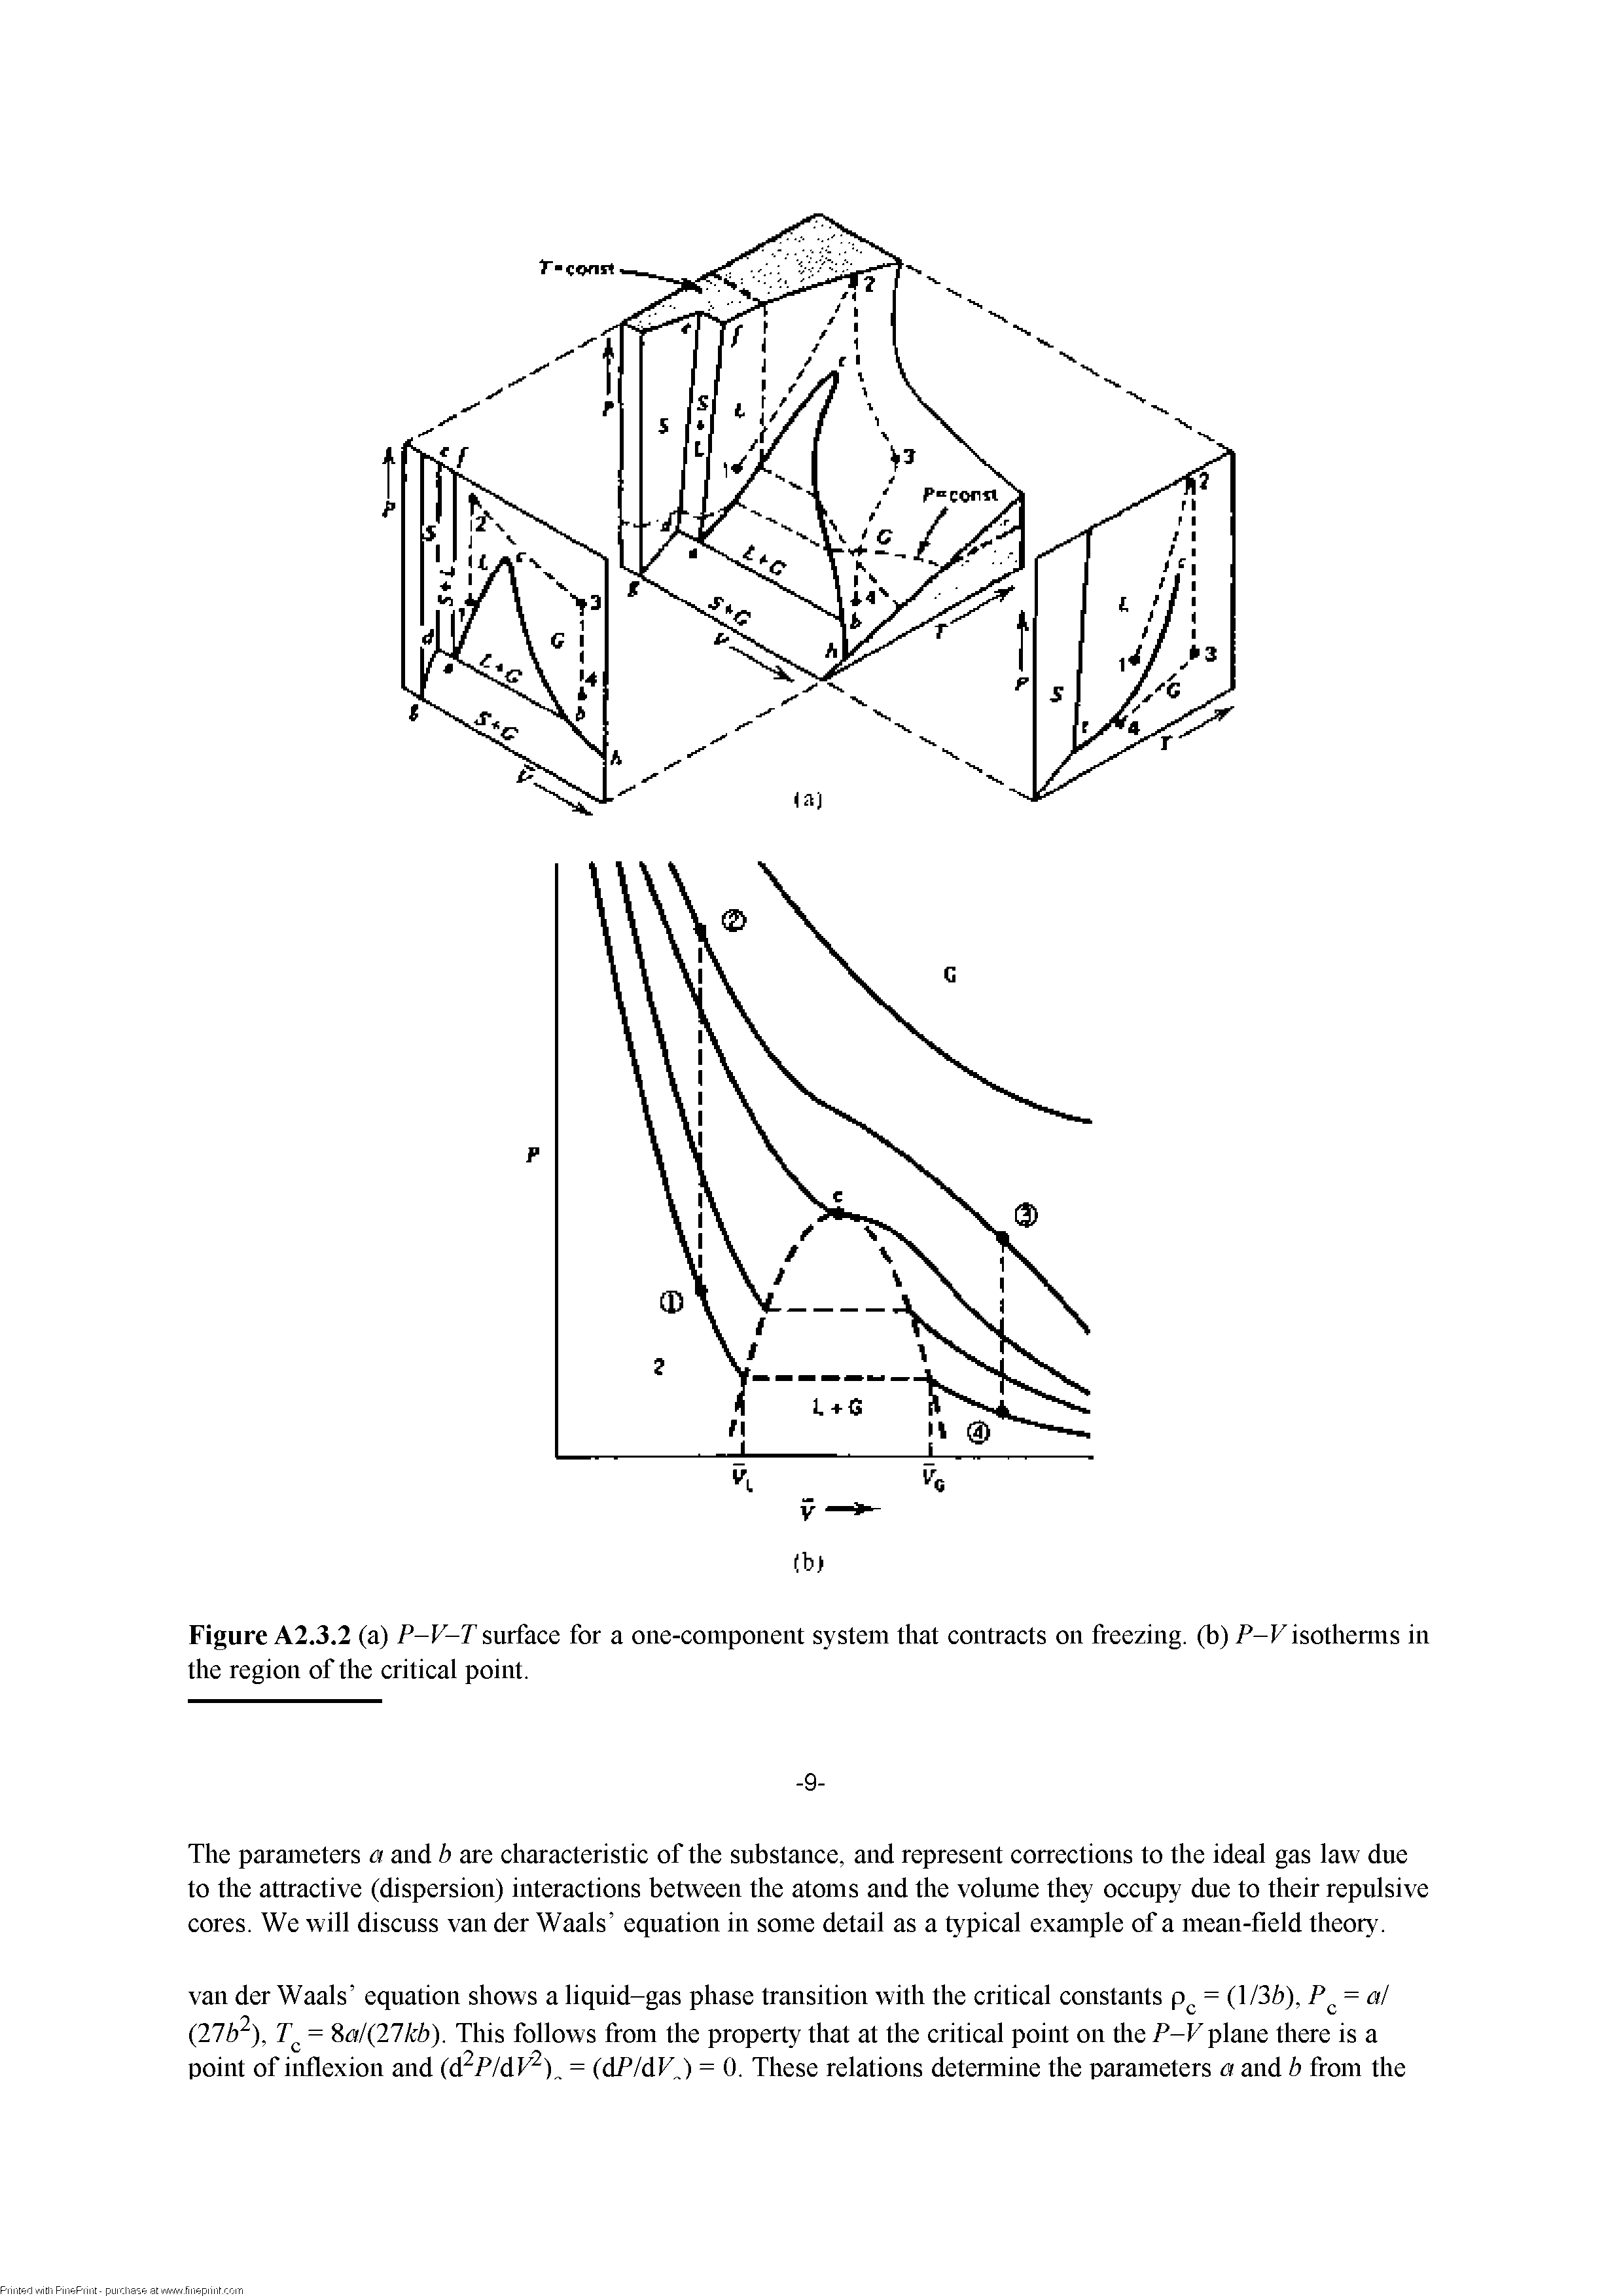 "Figure A2.3.2 (a) P-V-T surface for a one-<a href=""/info/system_one_component"">component system</a> that contracts on freezing, (b) P-Visothenns in the region of the critical point."